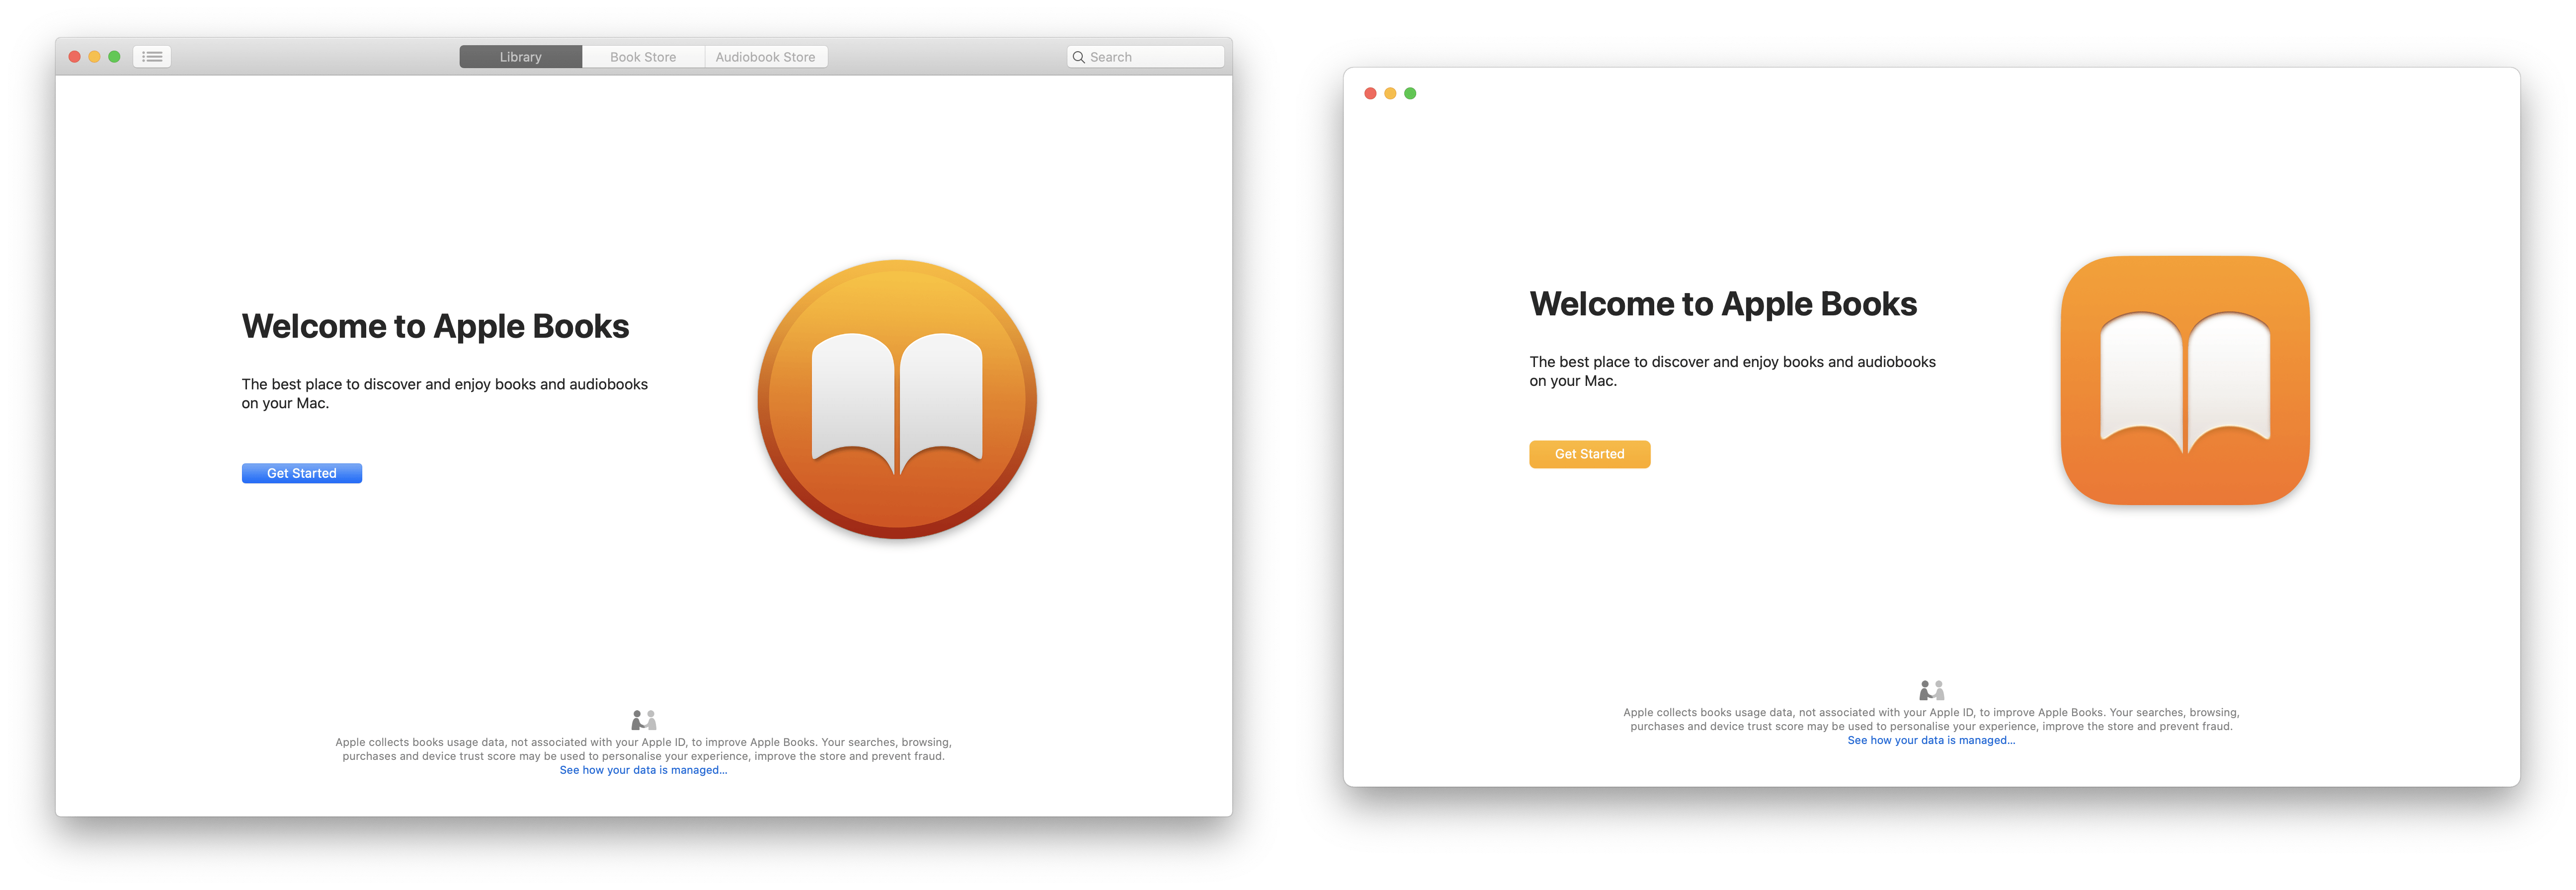 apple-books-first-launch-macos-catalina-big-sur-comparison